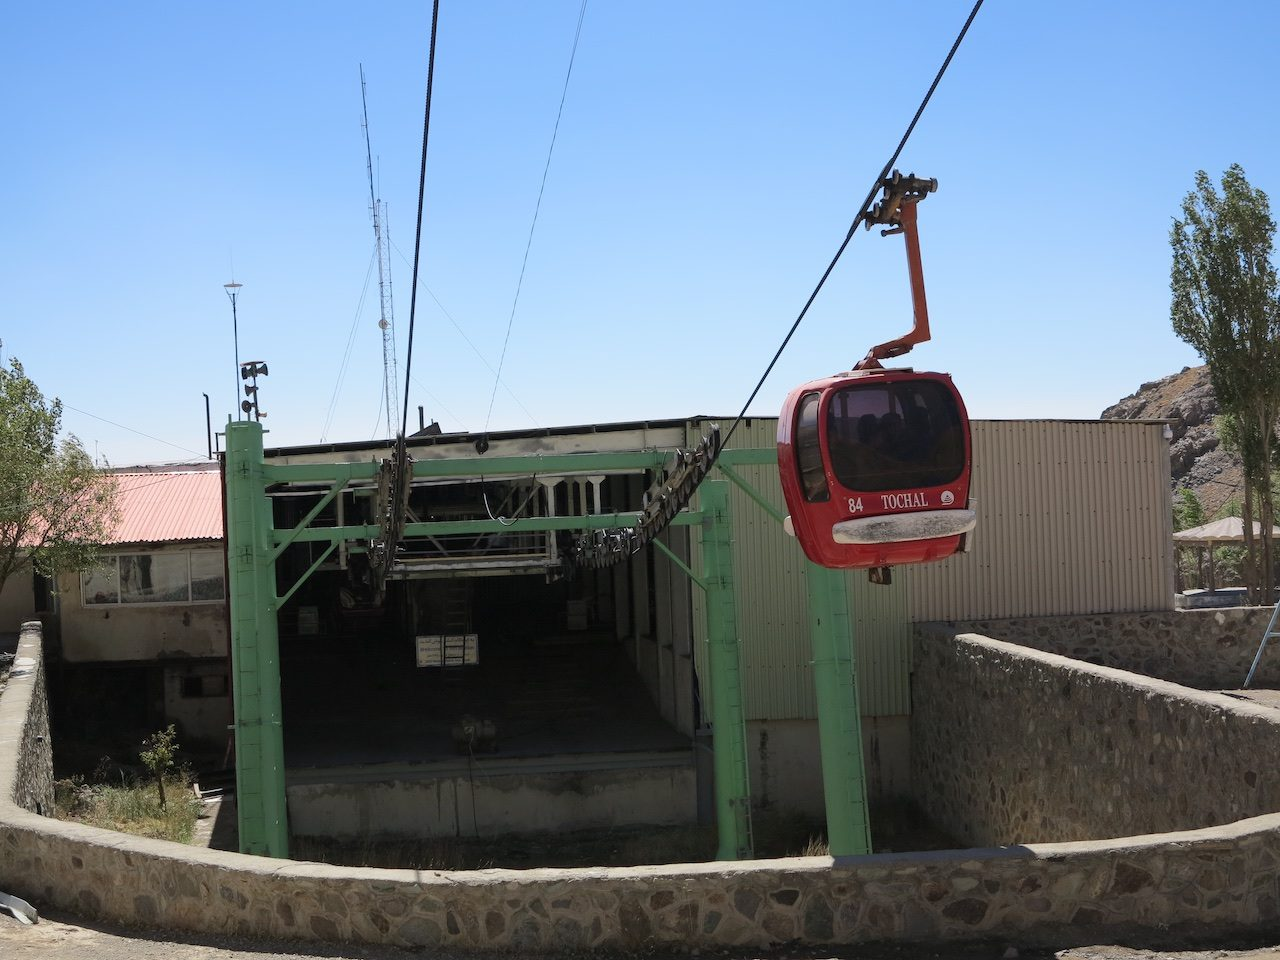 Cable car emerging from a station